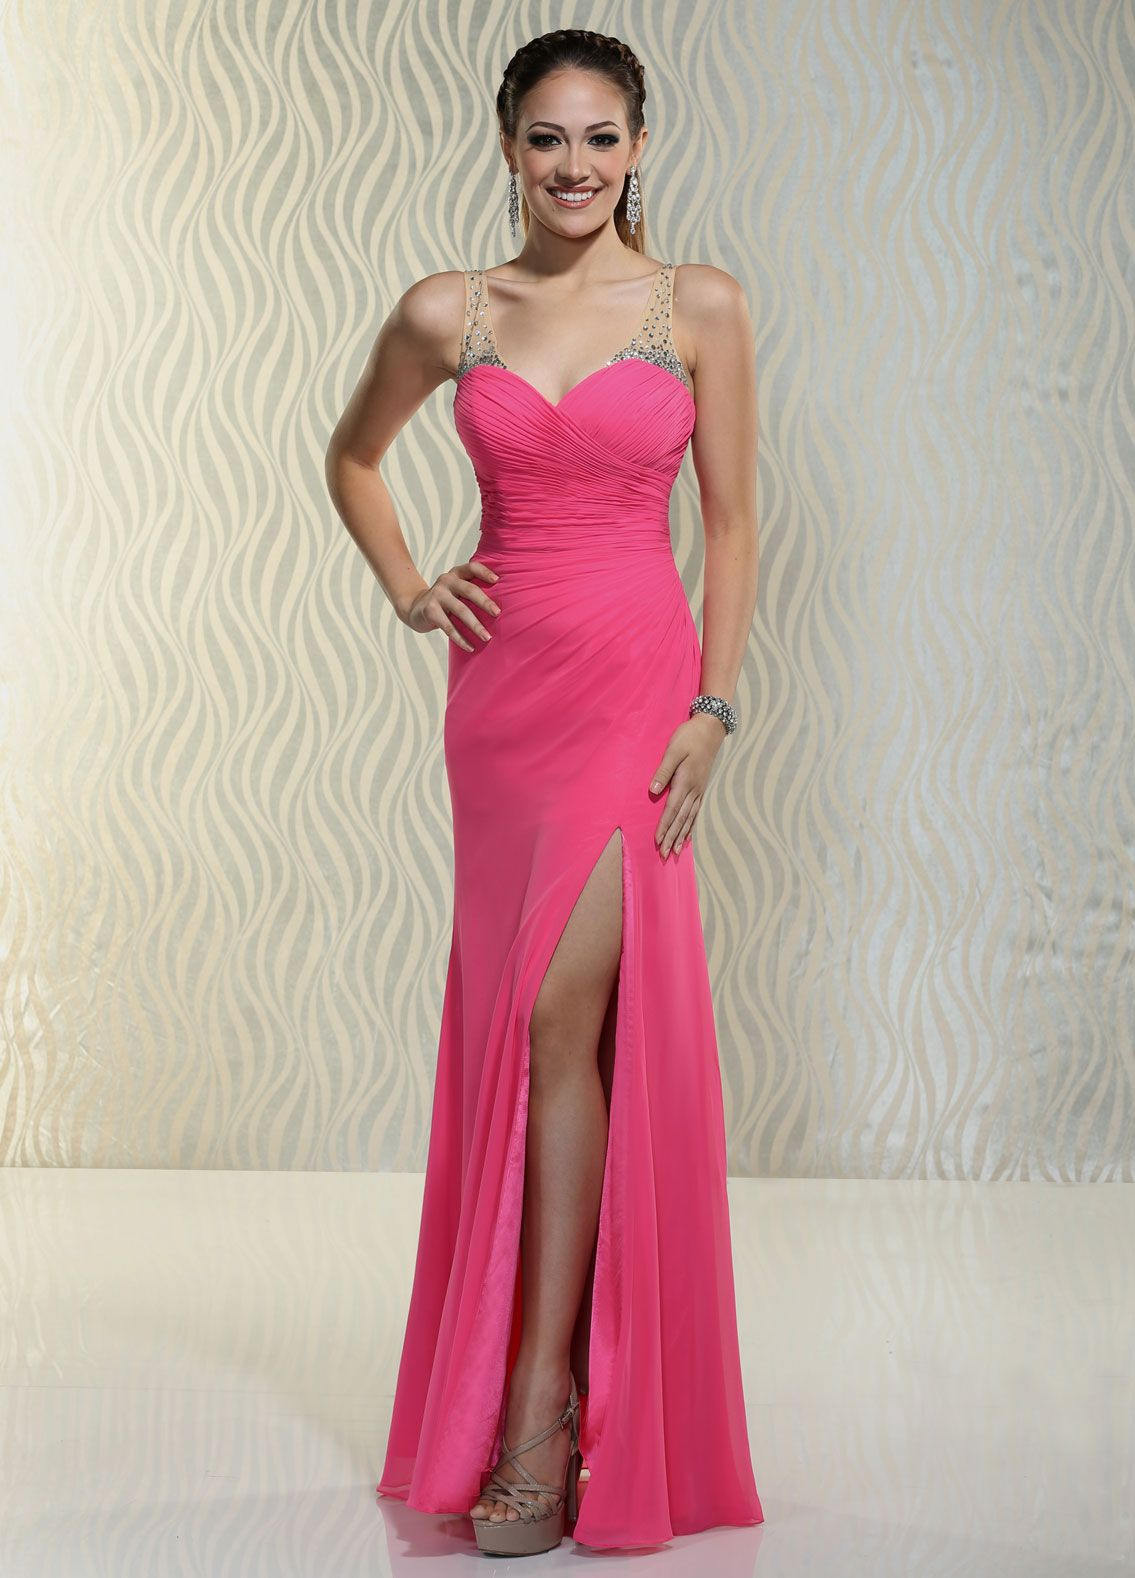 Prom Gowns by Xcite Prom | Prom(: | Pinterest | Prom, Gowns and Prom ...